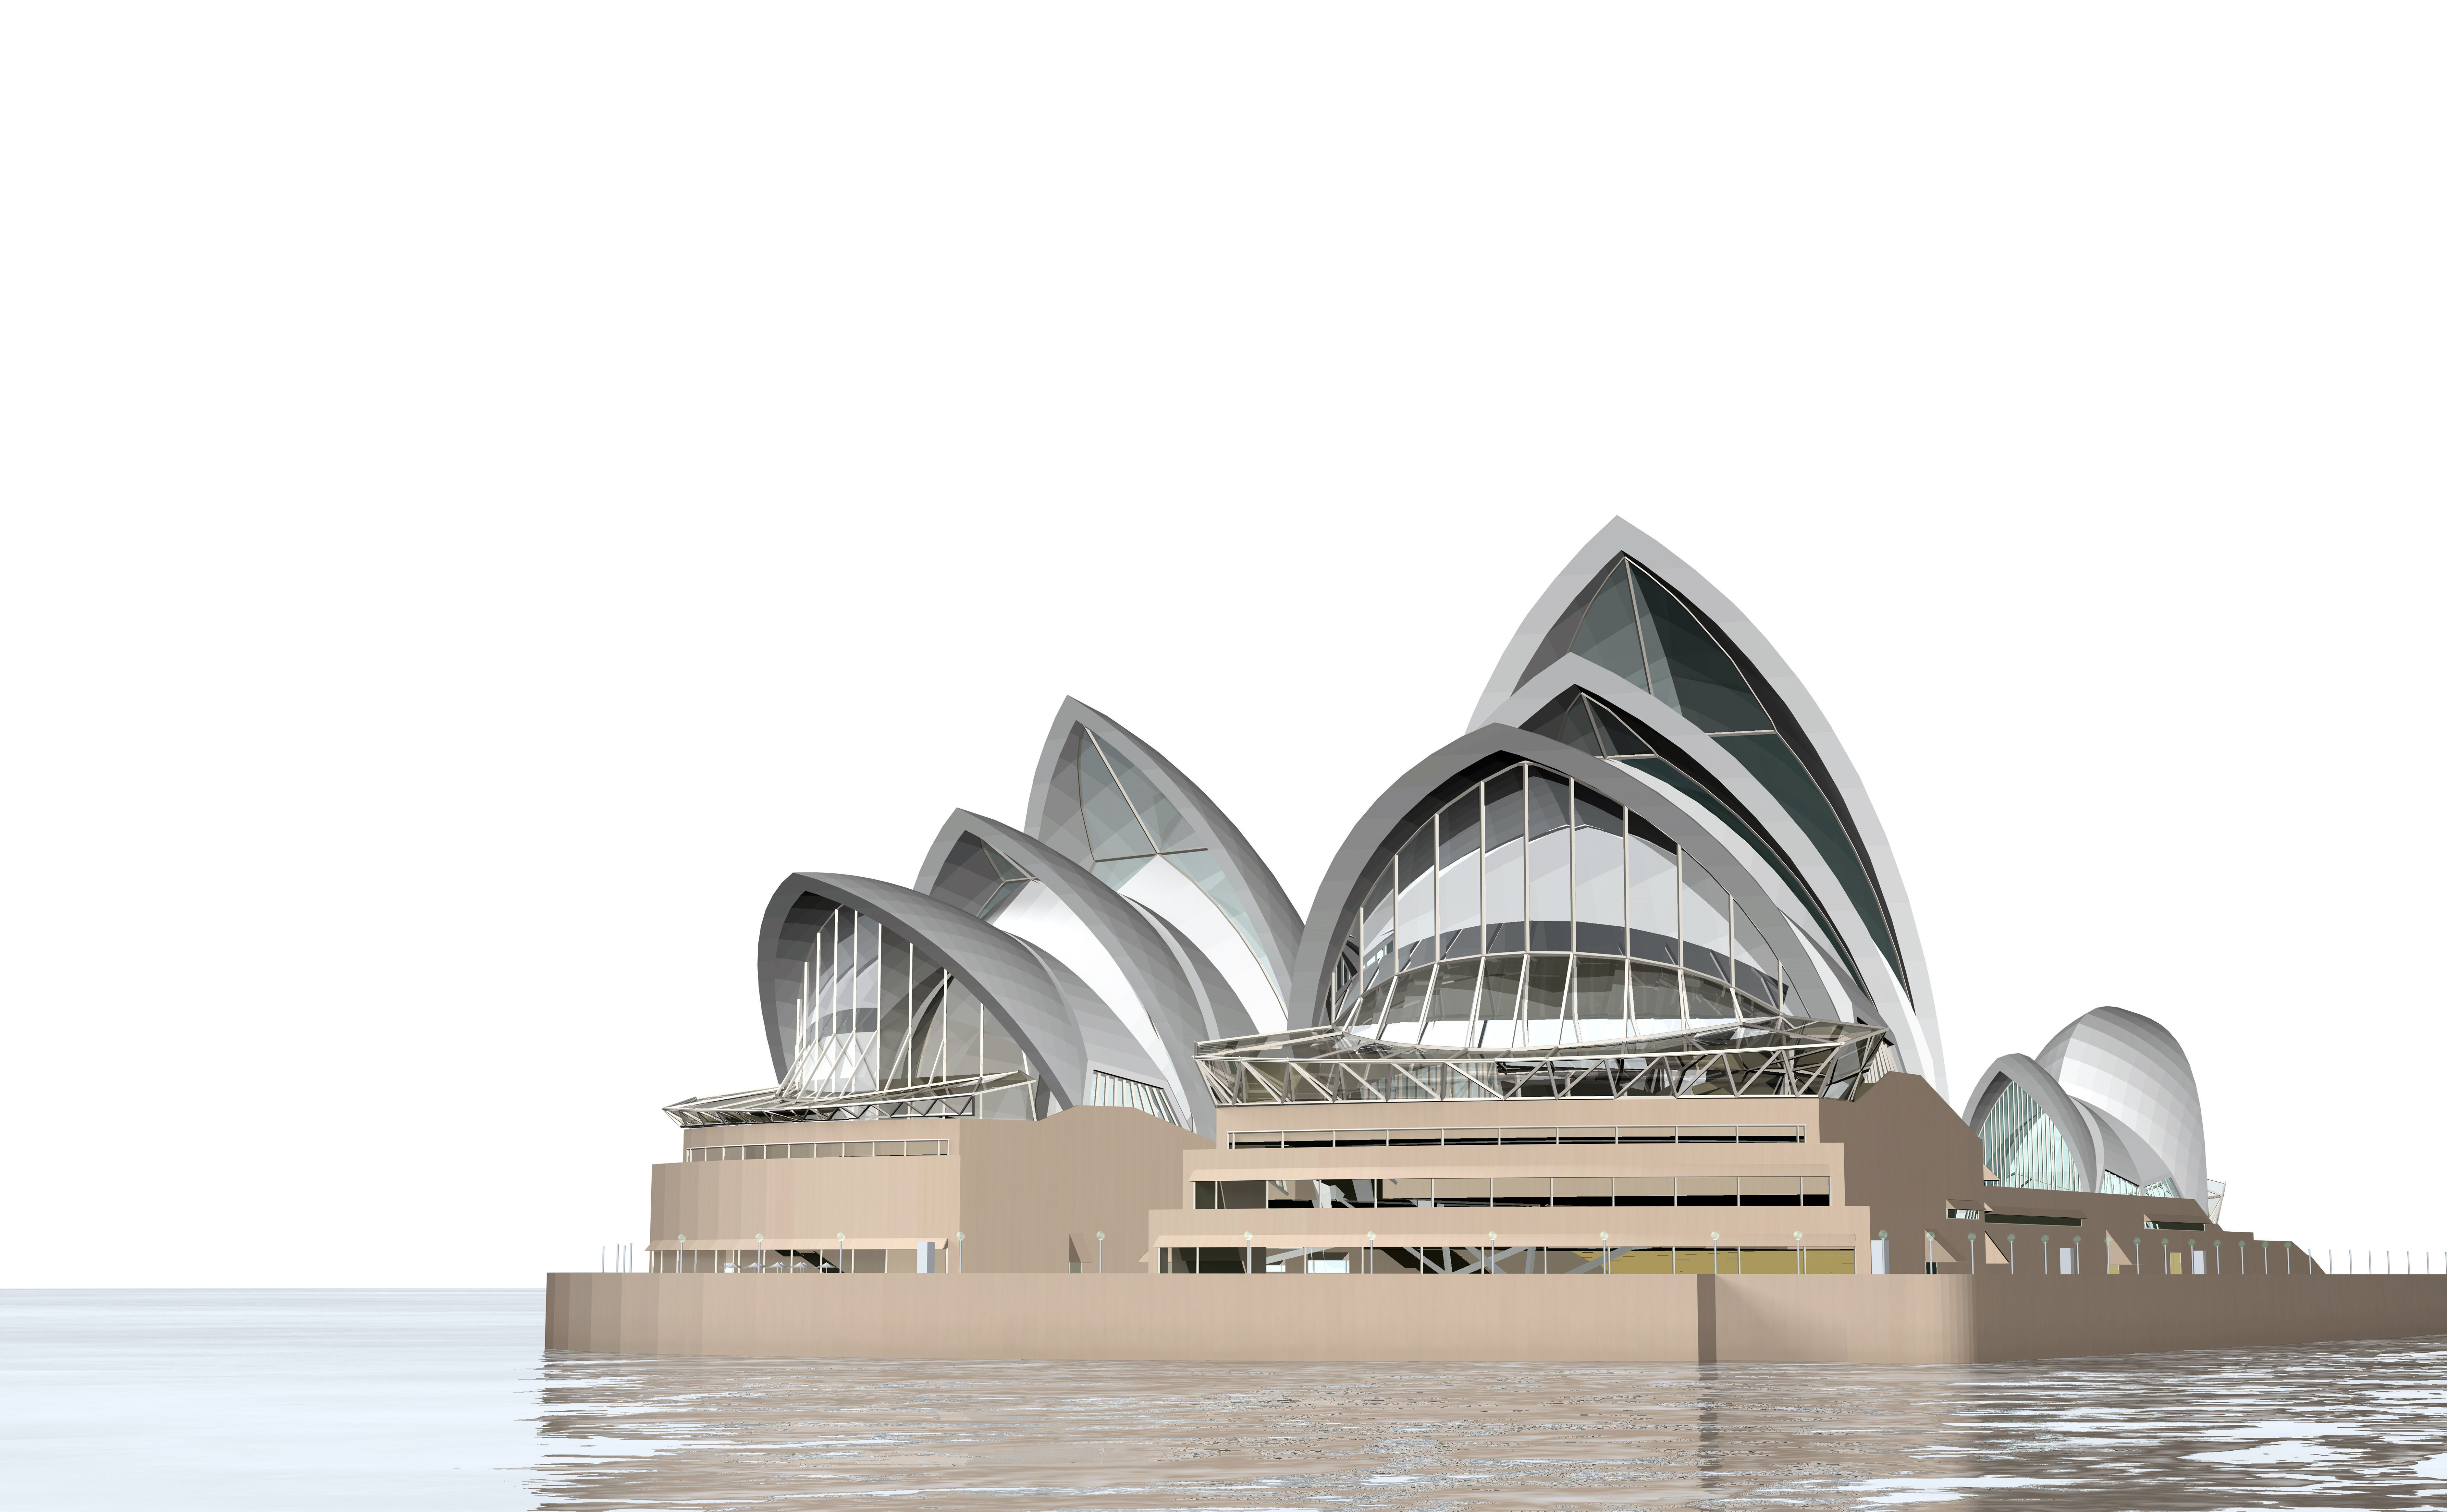 sydney opera house 3d model 3ds c4d dae skp - 19+ Sydney Opera House Picture Download  Pics